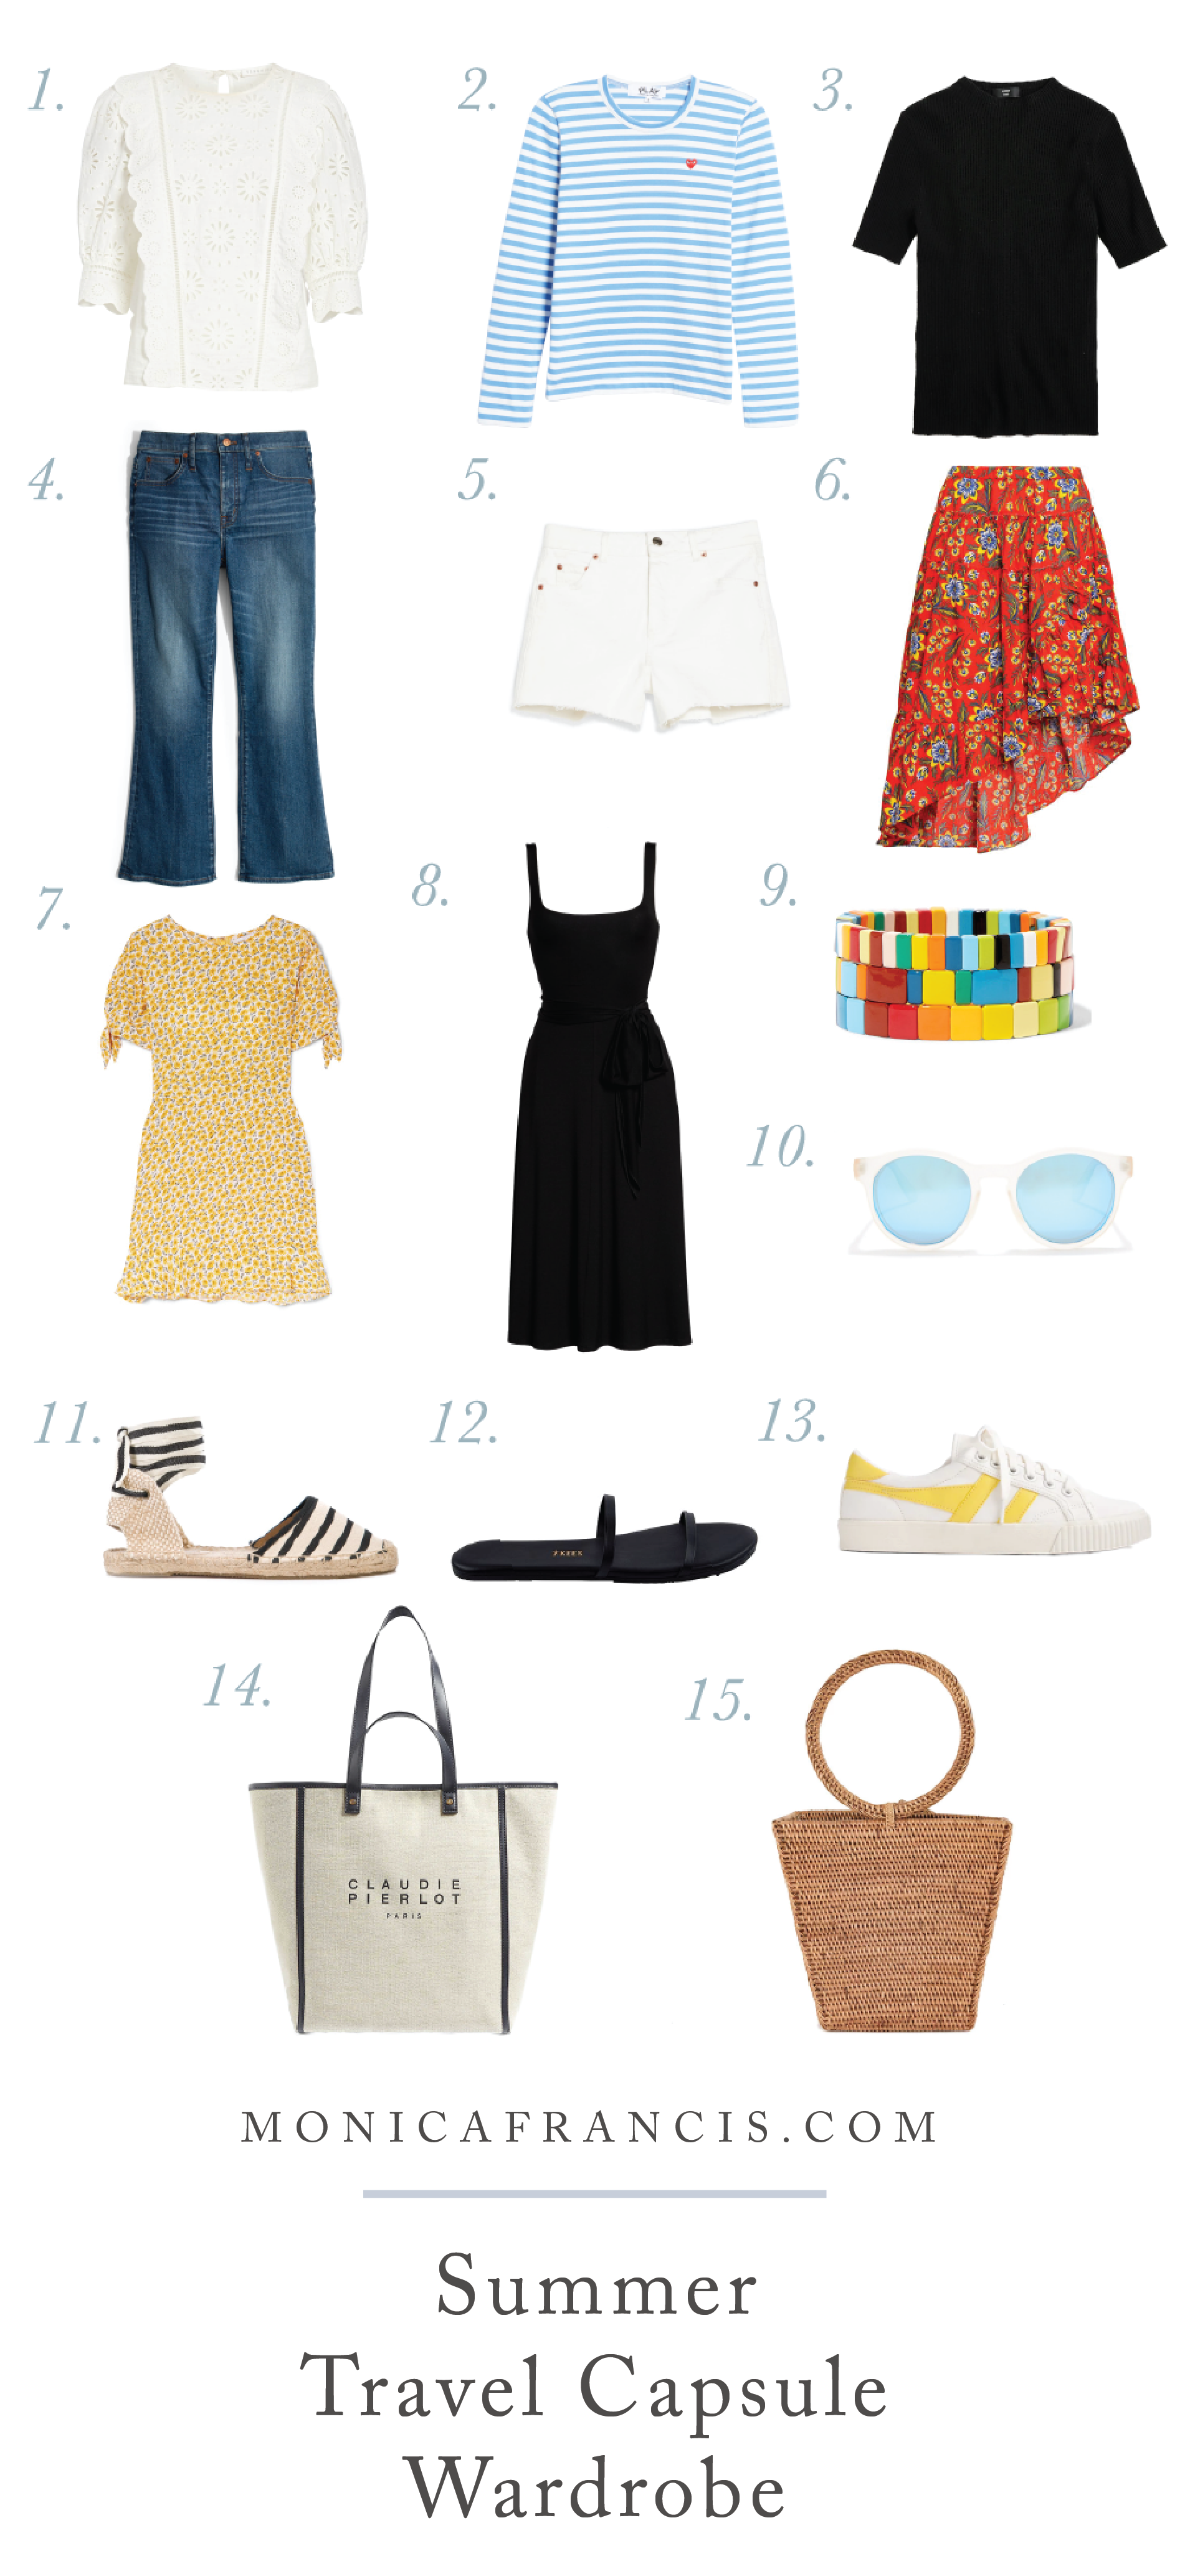 How to Pack a Travel Capsule Wardrobe   Summer 2019 — Monica Francis How to Pack